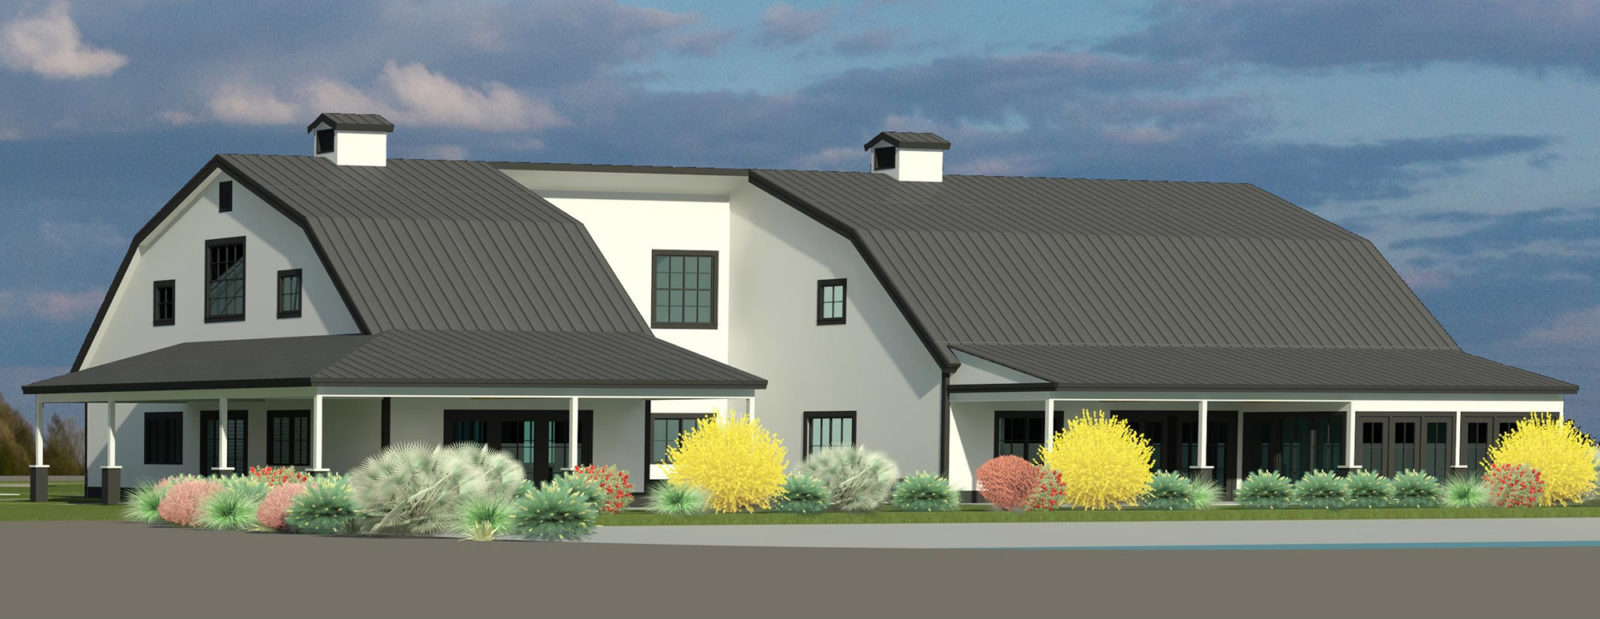 Rendering of the Barn exterior